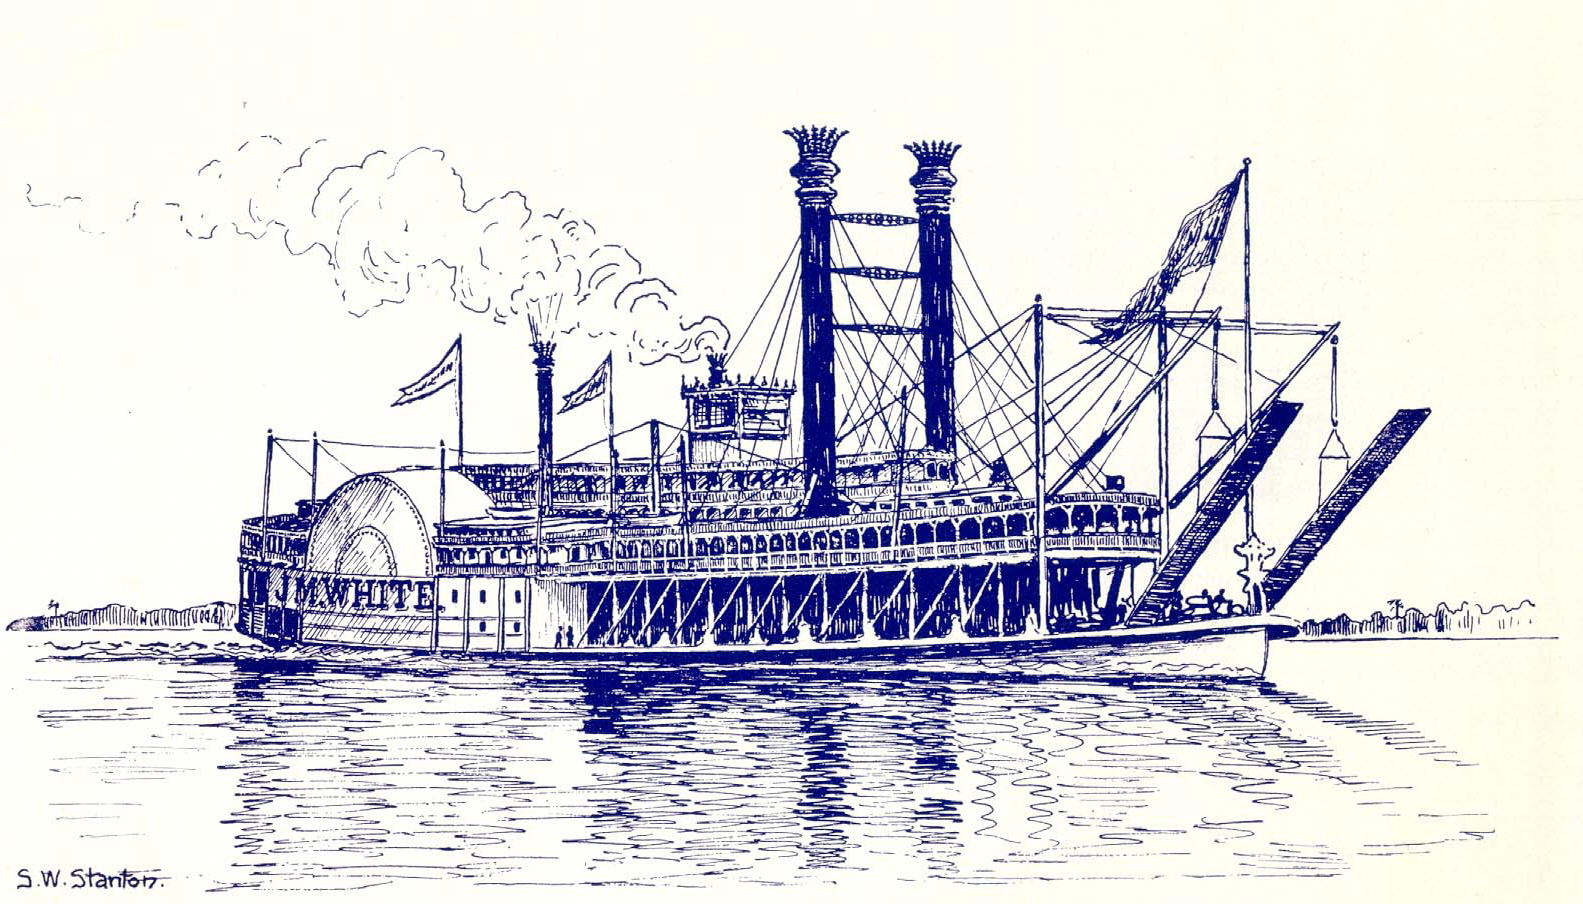 J.M._White__steamboat_1878_.jpg